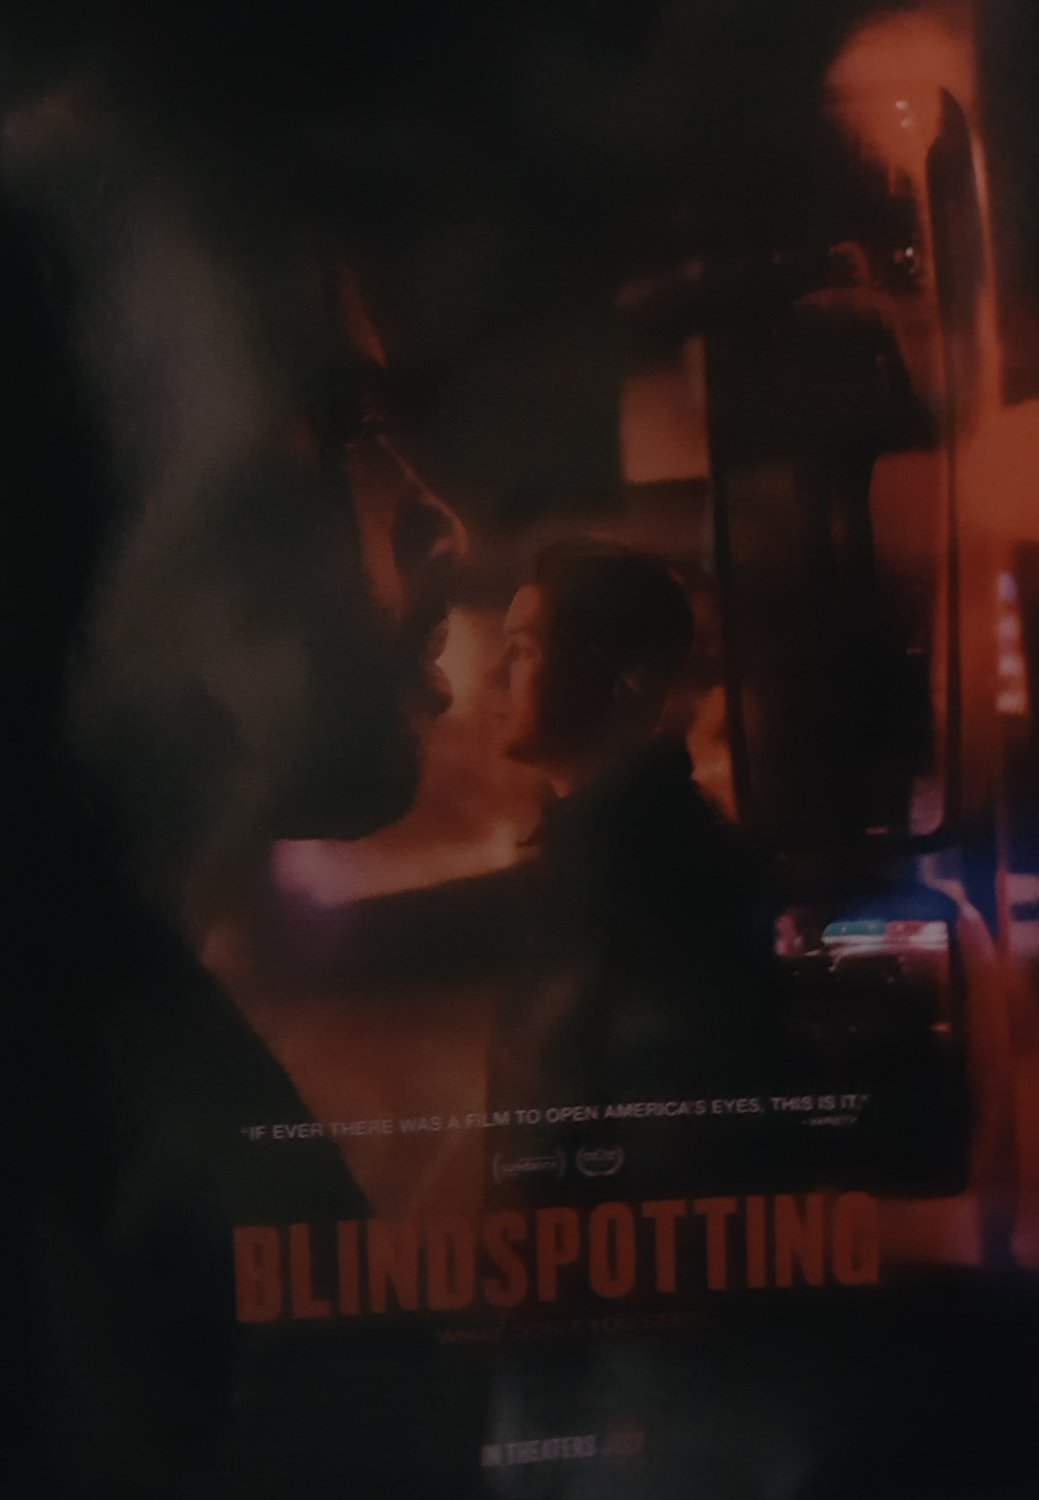 Blindspotting Advance Version B Double Sided  Original Movie Poster  27X40